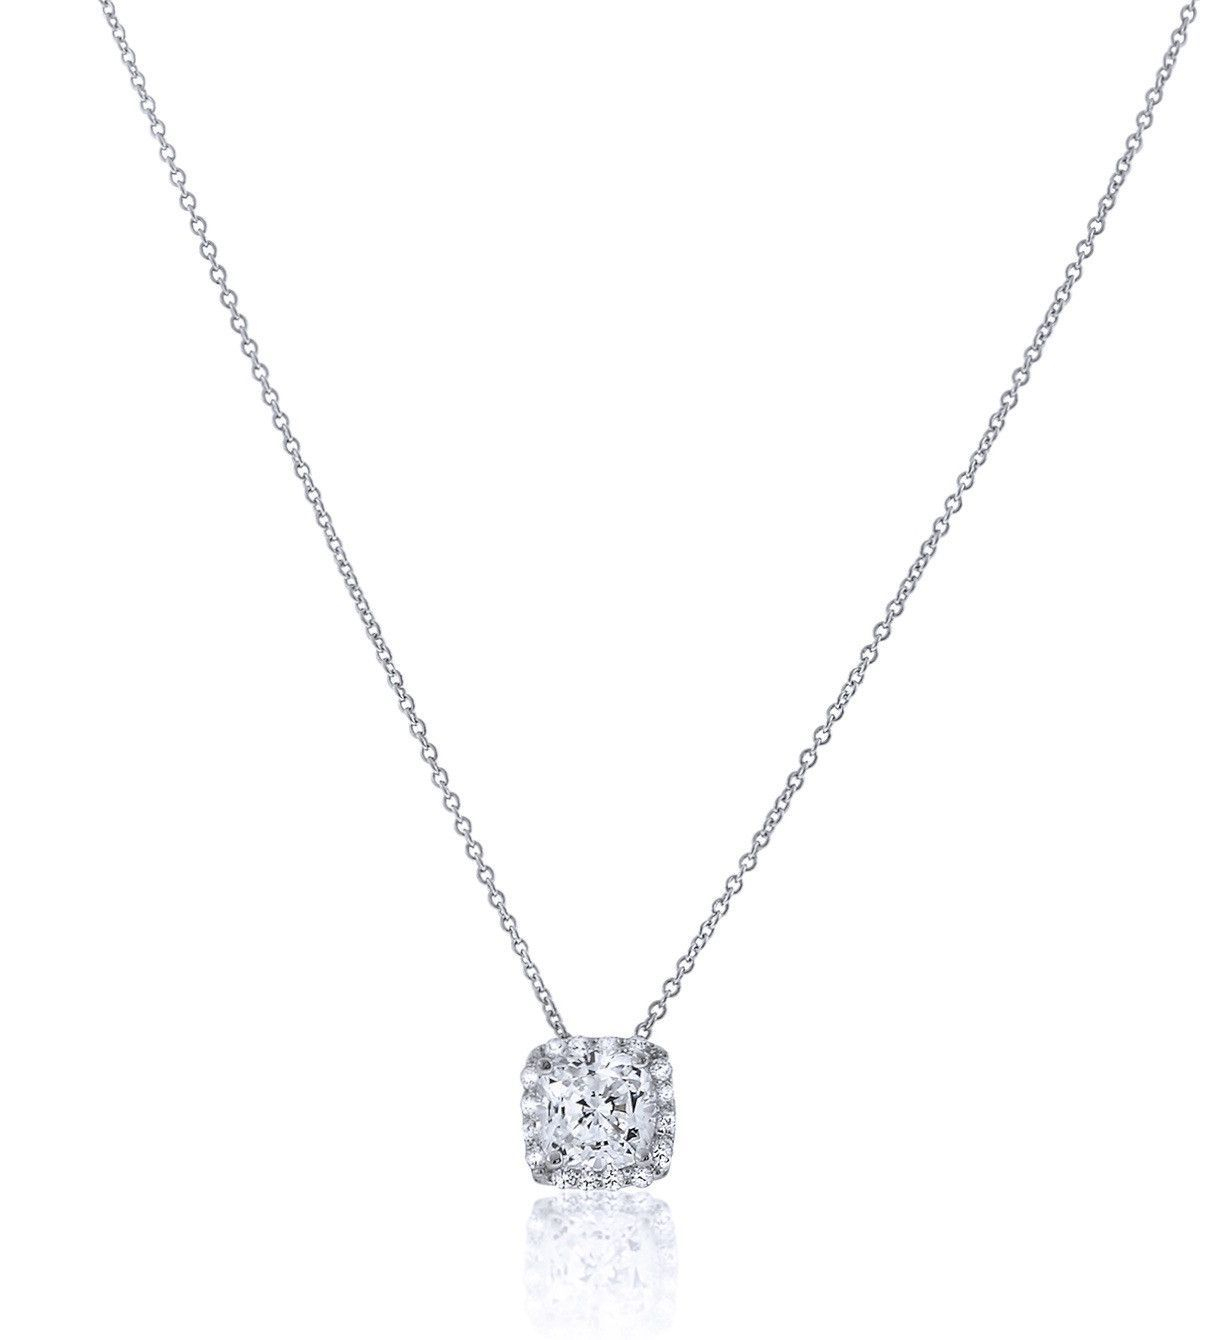 Chandi Diamond Square Pendant Necklace With Halo | Jewelry In 2019 Within Most Current Square Sparkle Halo Pendant Necklaces (View 2 of 25)